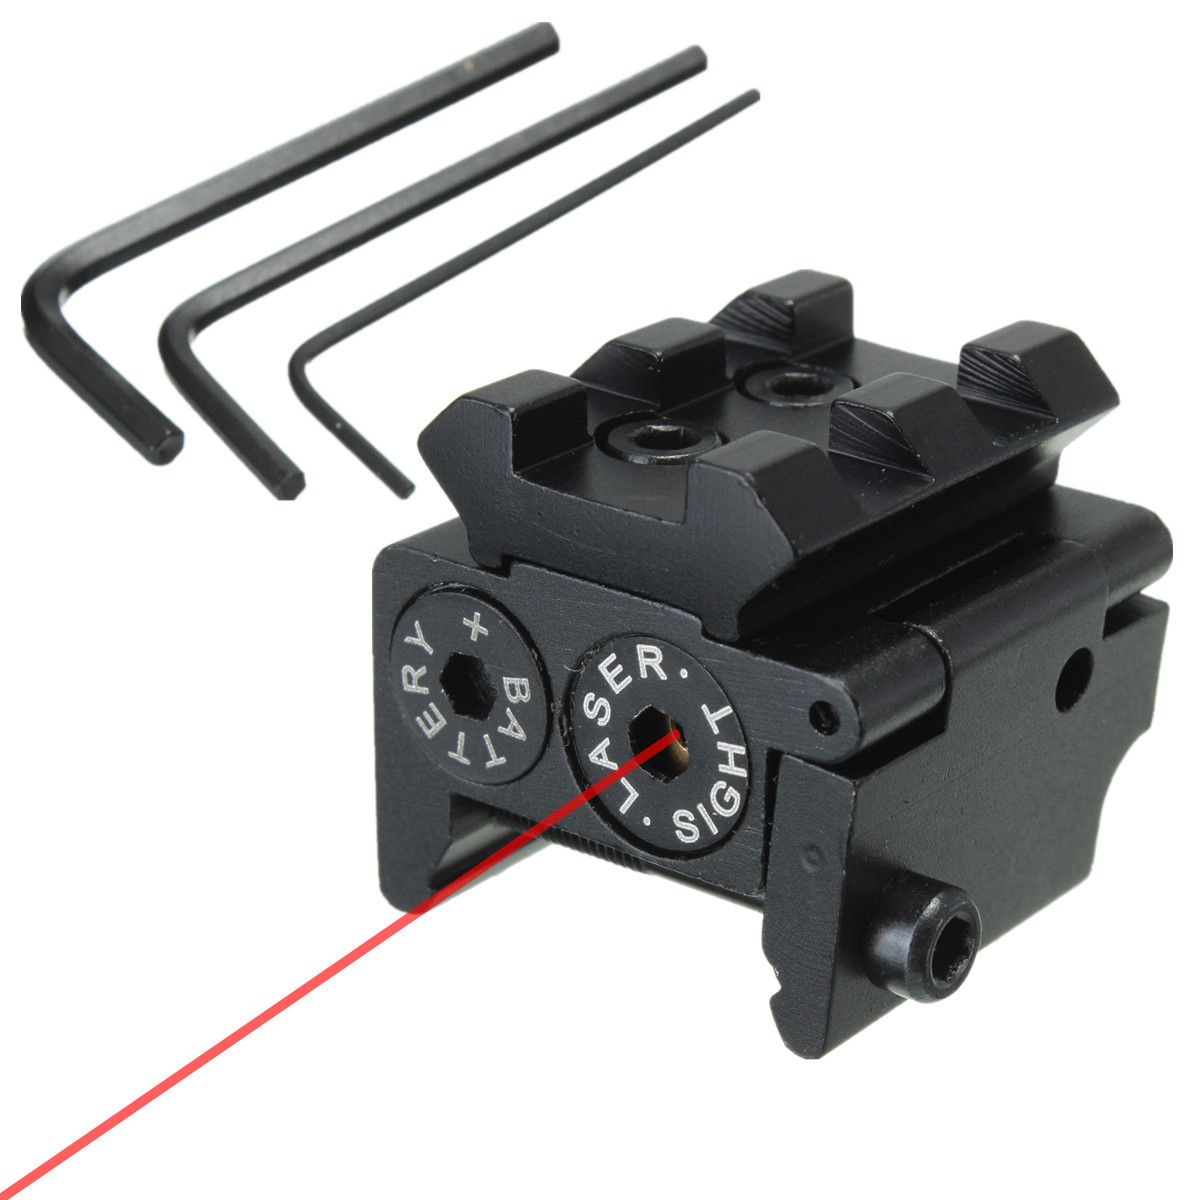 Mini Compact Tactical Red Dot Laser Bore Sight Scope With 20mm Picatinny Rail Mount tactical 6 24x44 sf optics riflescope long eye relief optic sight rifle scope hunting sniper scopes miras para carabinas